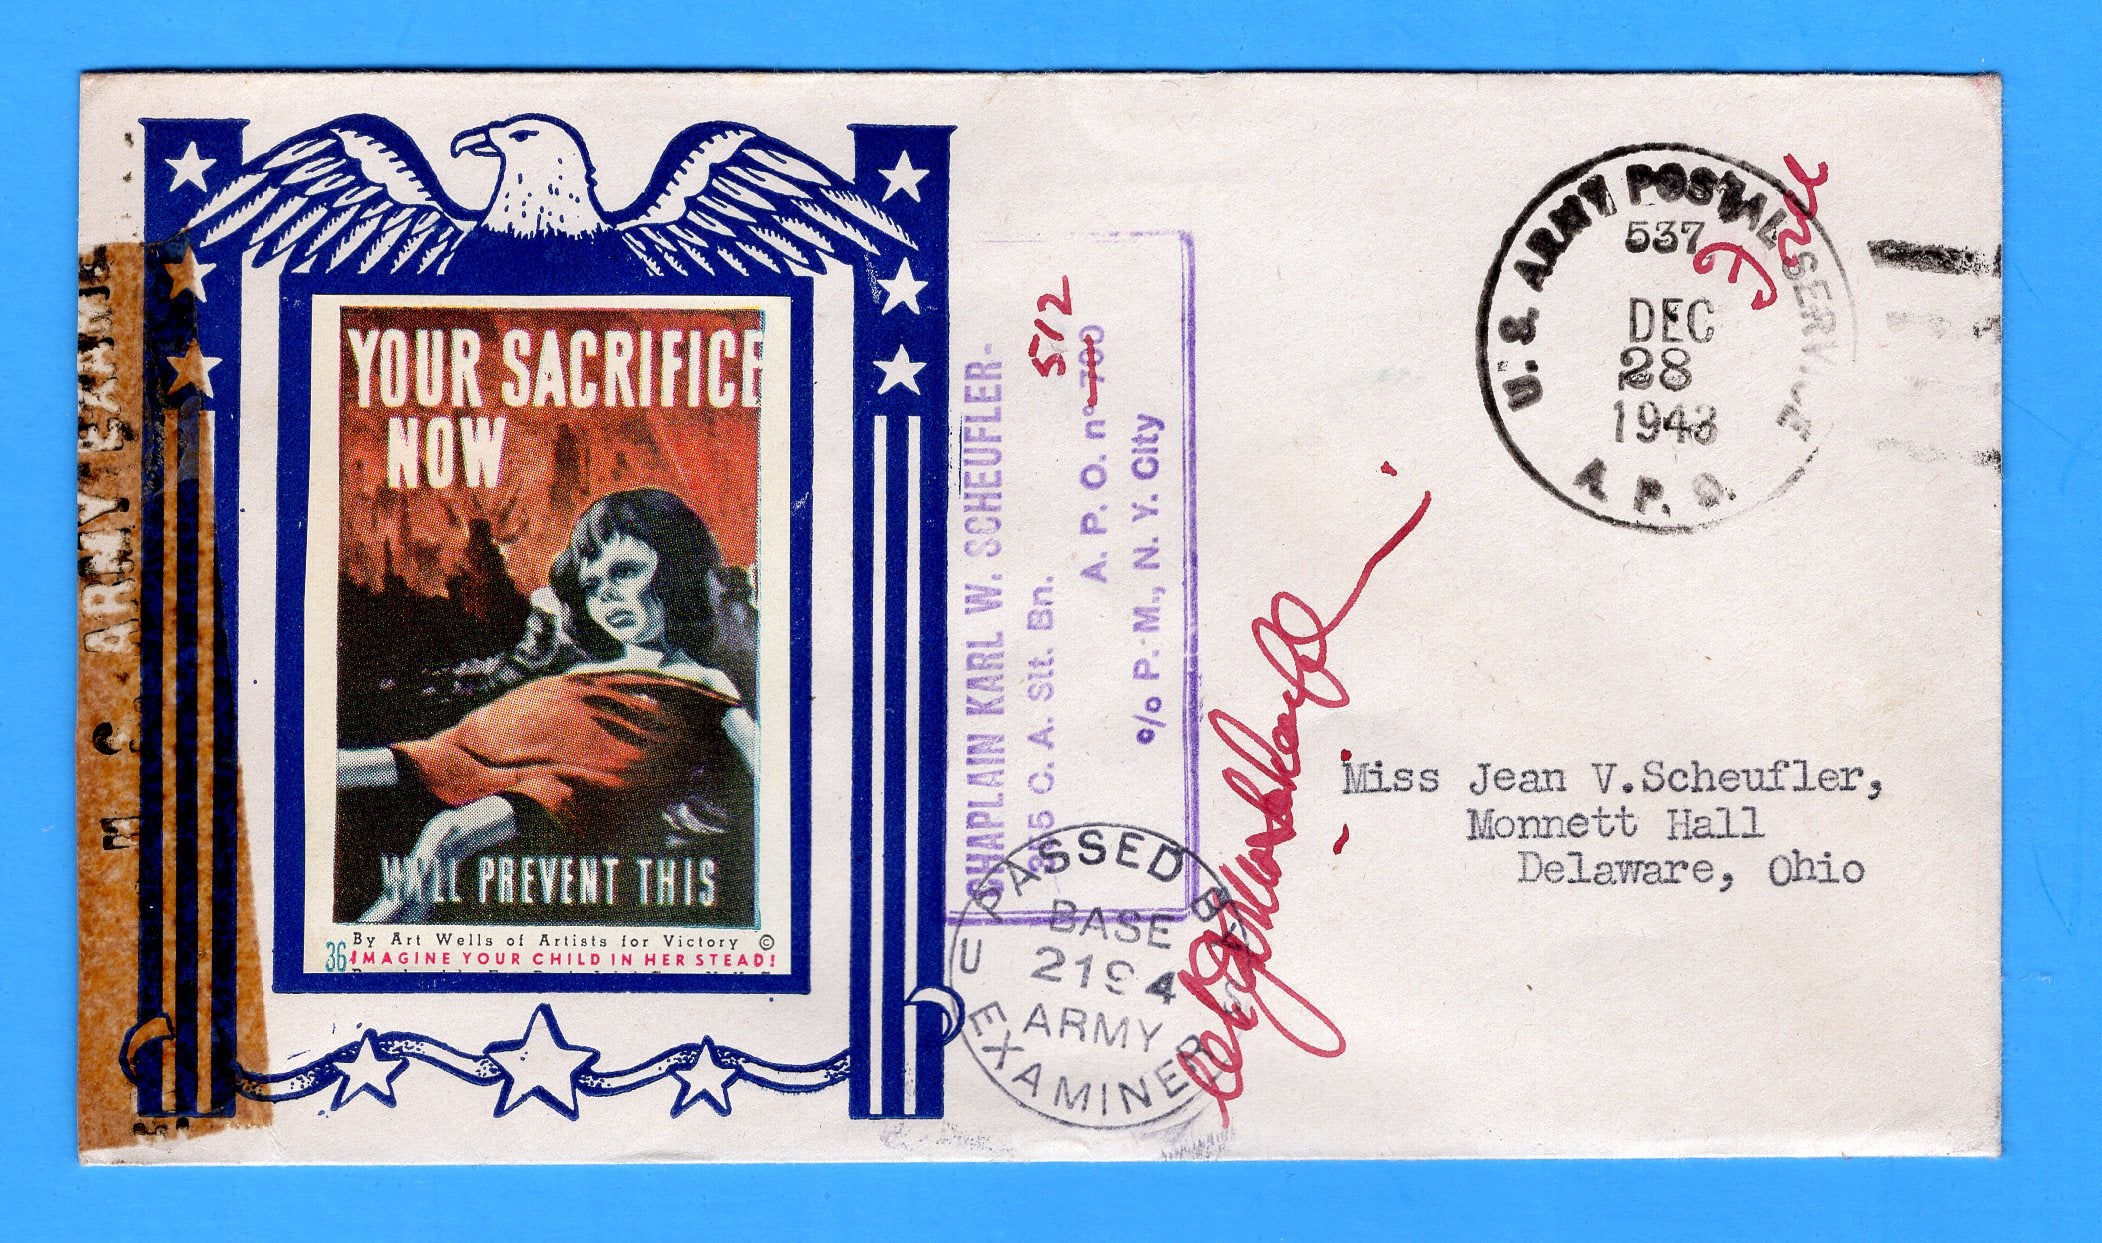 "Army Chaplain's Free Mail APO 512 Algiers, Algeria, Cancelled APO 537 Bizerte, Tunisia ""Your Sacrifice Now Will Prevent This"" December 28, 1943 - Patriotic Cover by Artists for Victory"